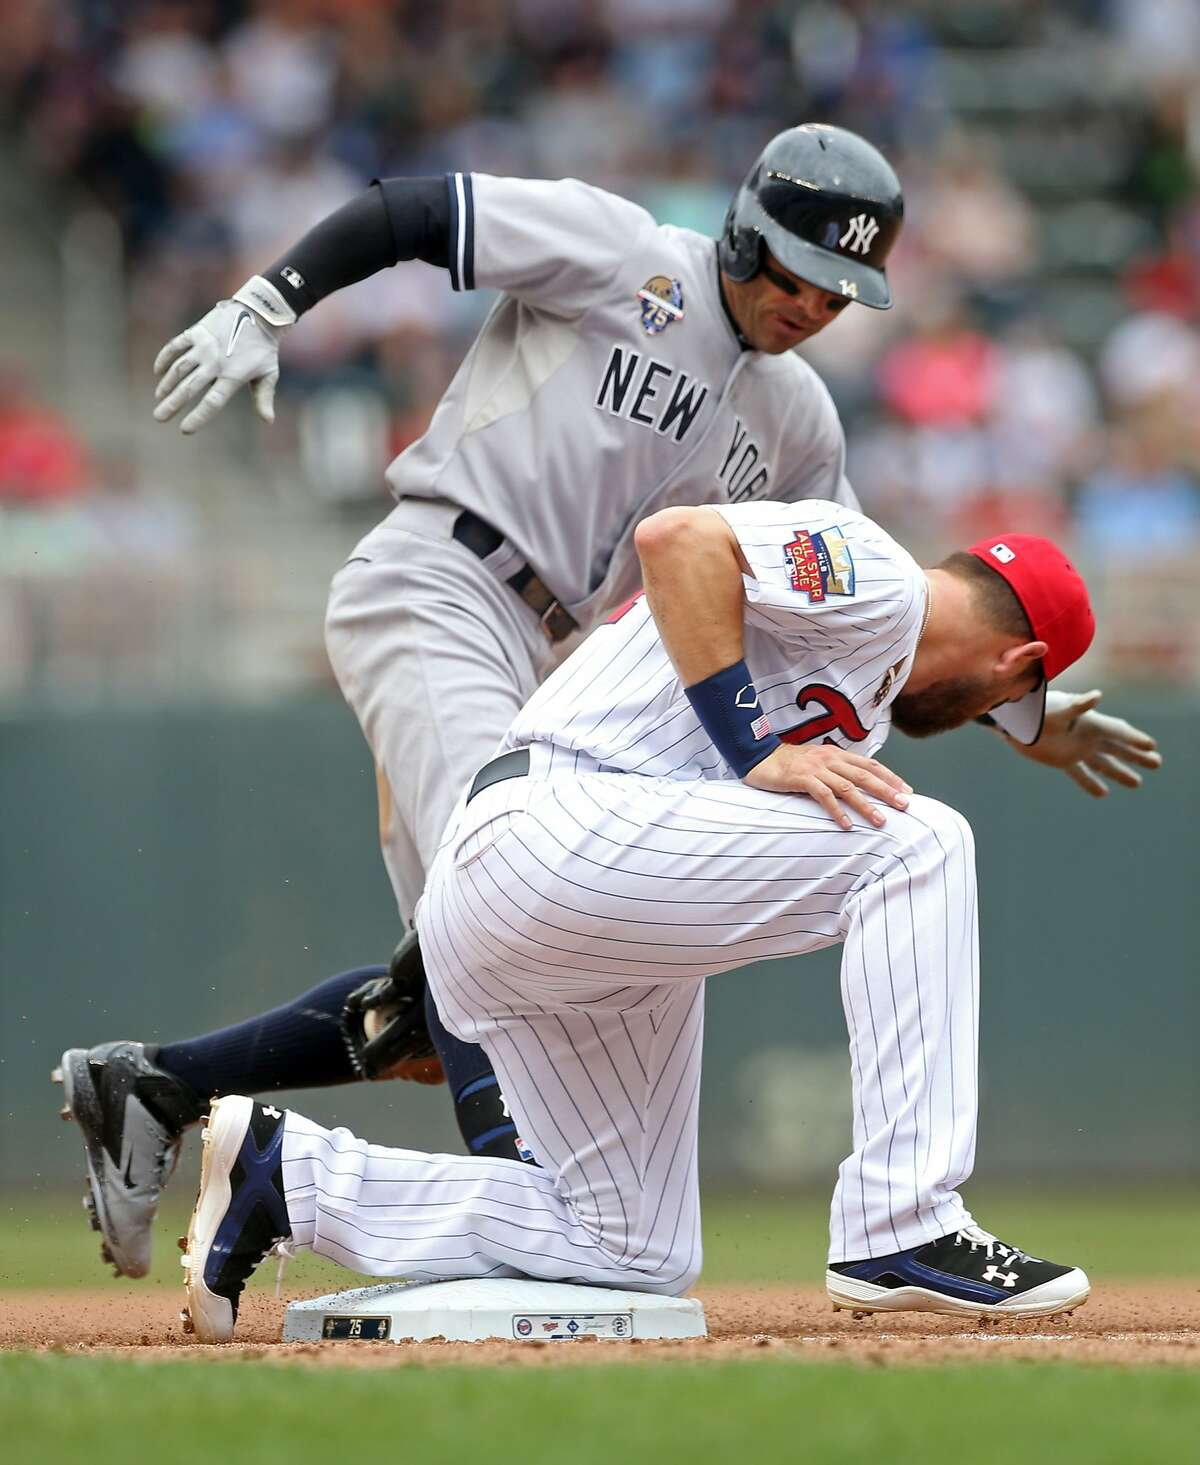 New York Yankees' Brian Roberts, right, beats the tag by Minnesota Twins' Trevor Plouffe to triple in the fourth inning of a baseball game, Friday, July 4, 2014, in Minneapolis. (AP Photo/Jim Mone)